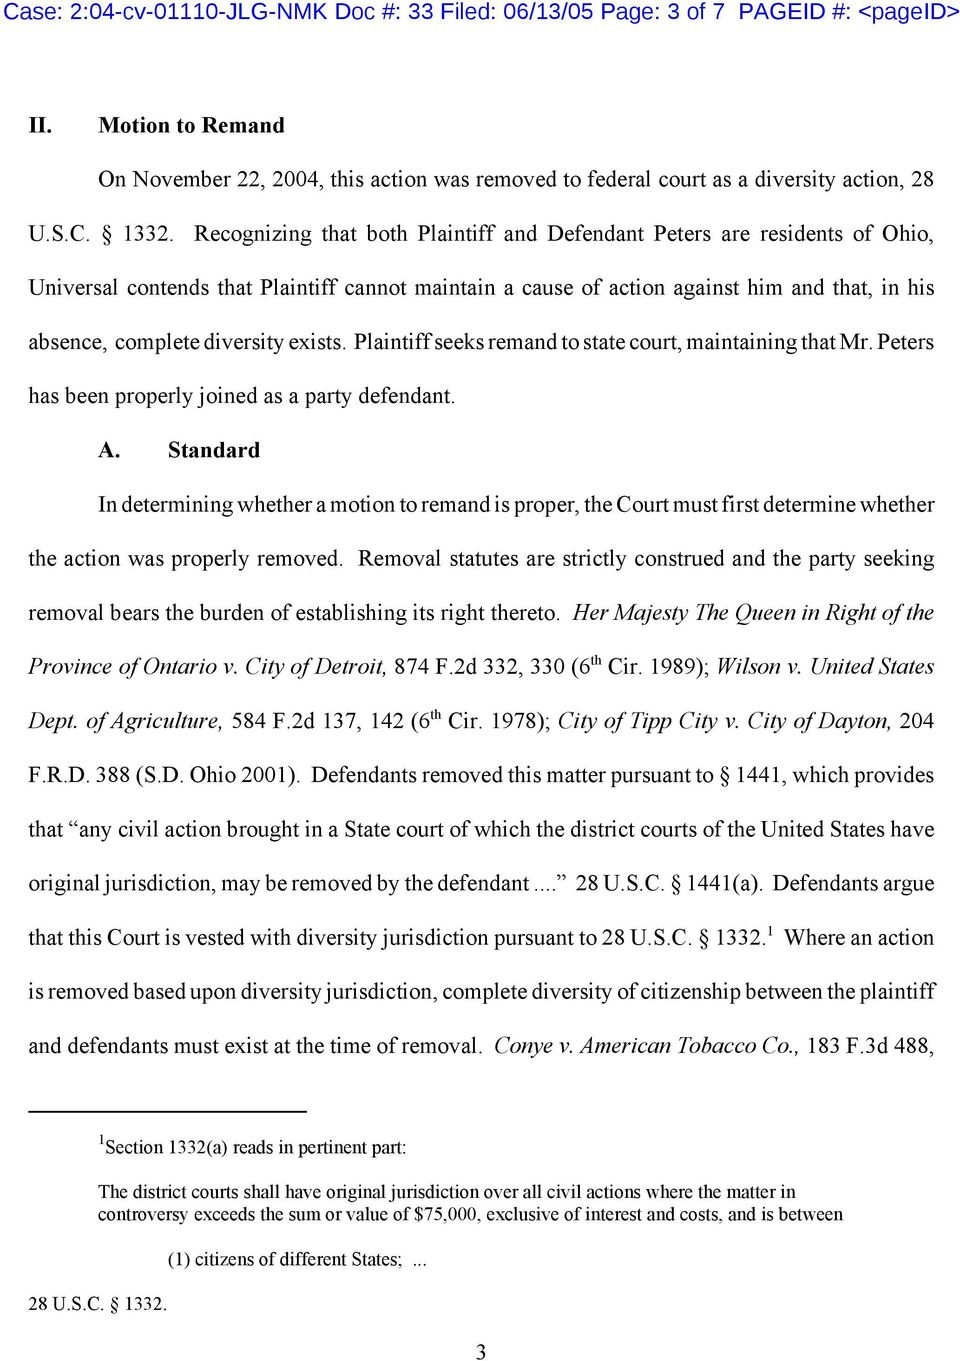 Recognizing that both Plaintiff and Defendant Peters are residents of Ohio, Universal contends that Plaintiff cannot maintain a cause of action against him and that, in his absence, complete